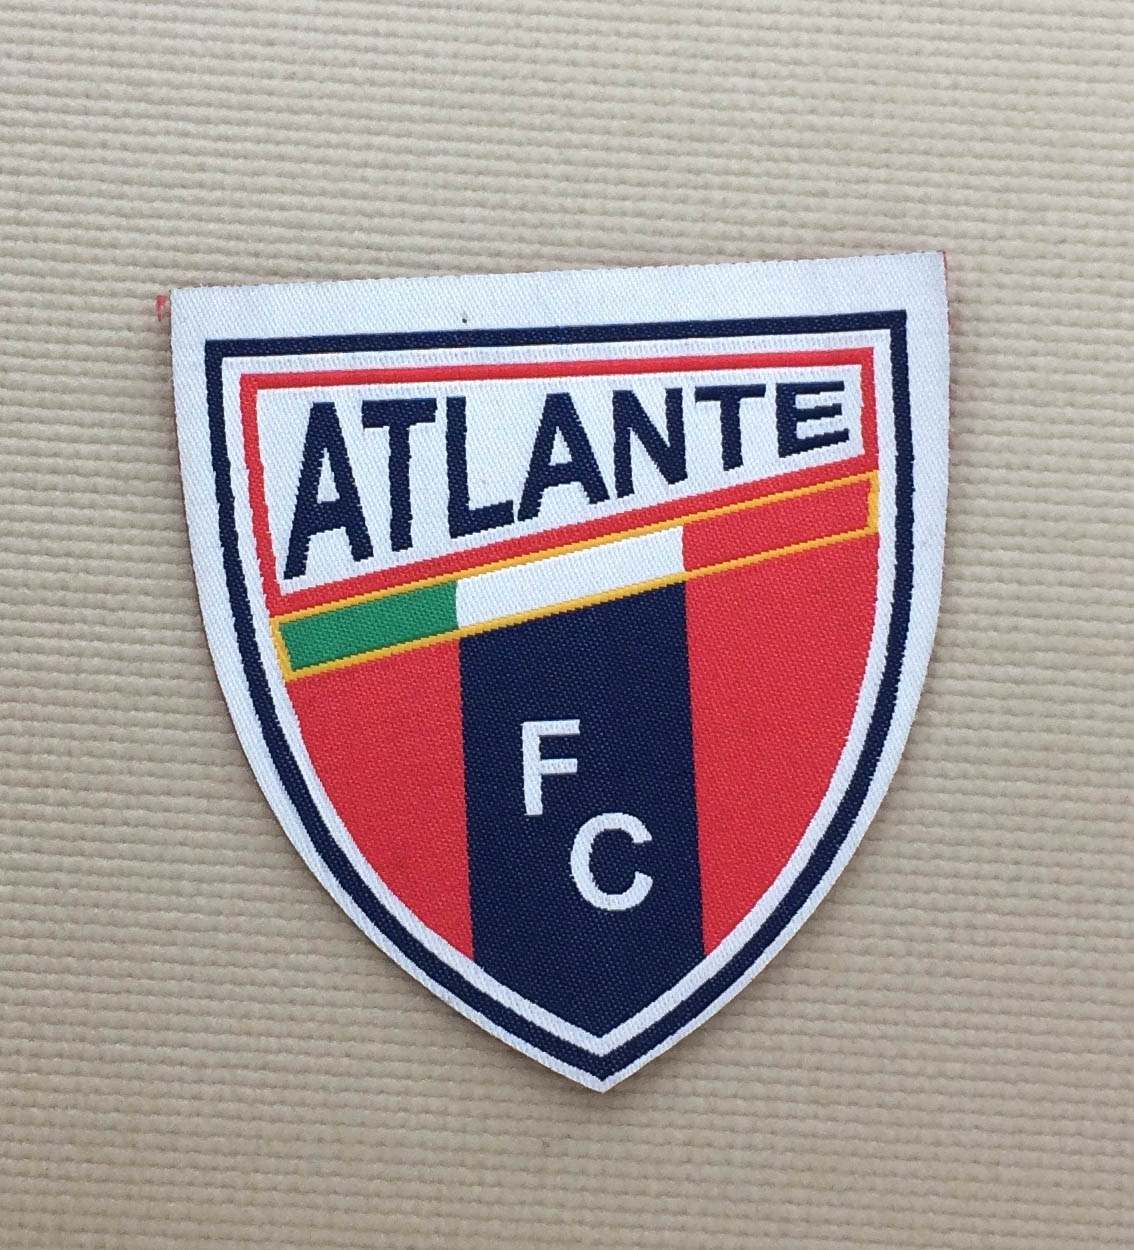 Club Atlante Patch